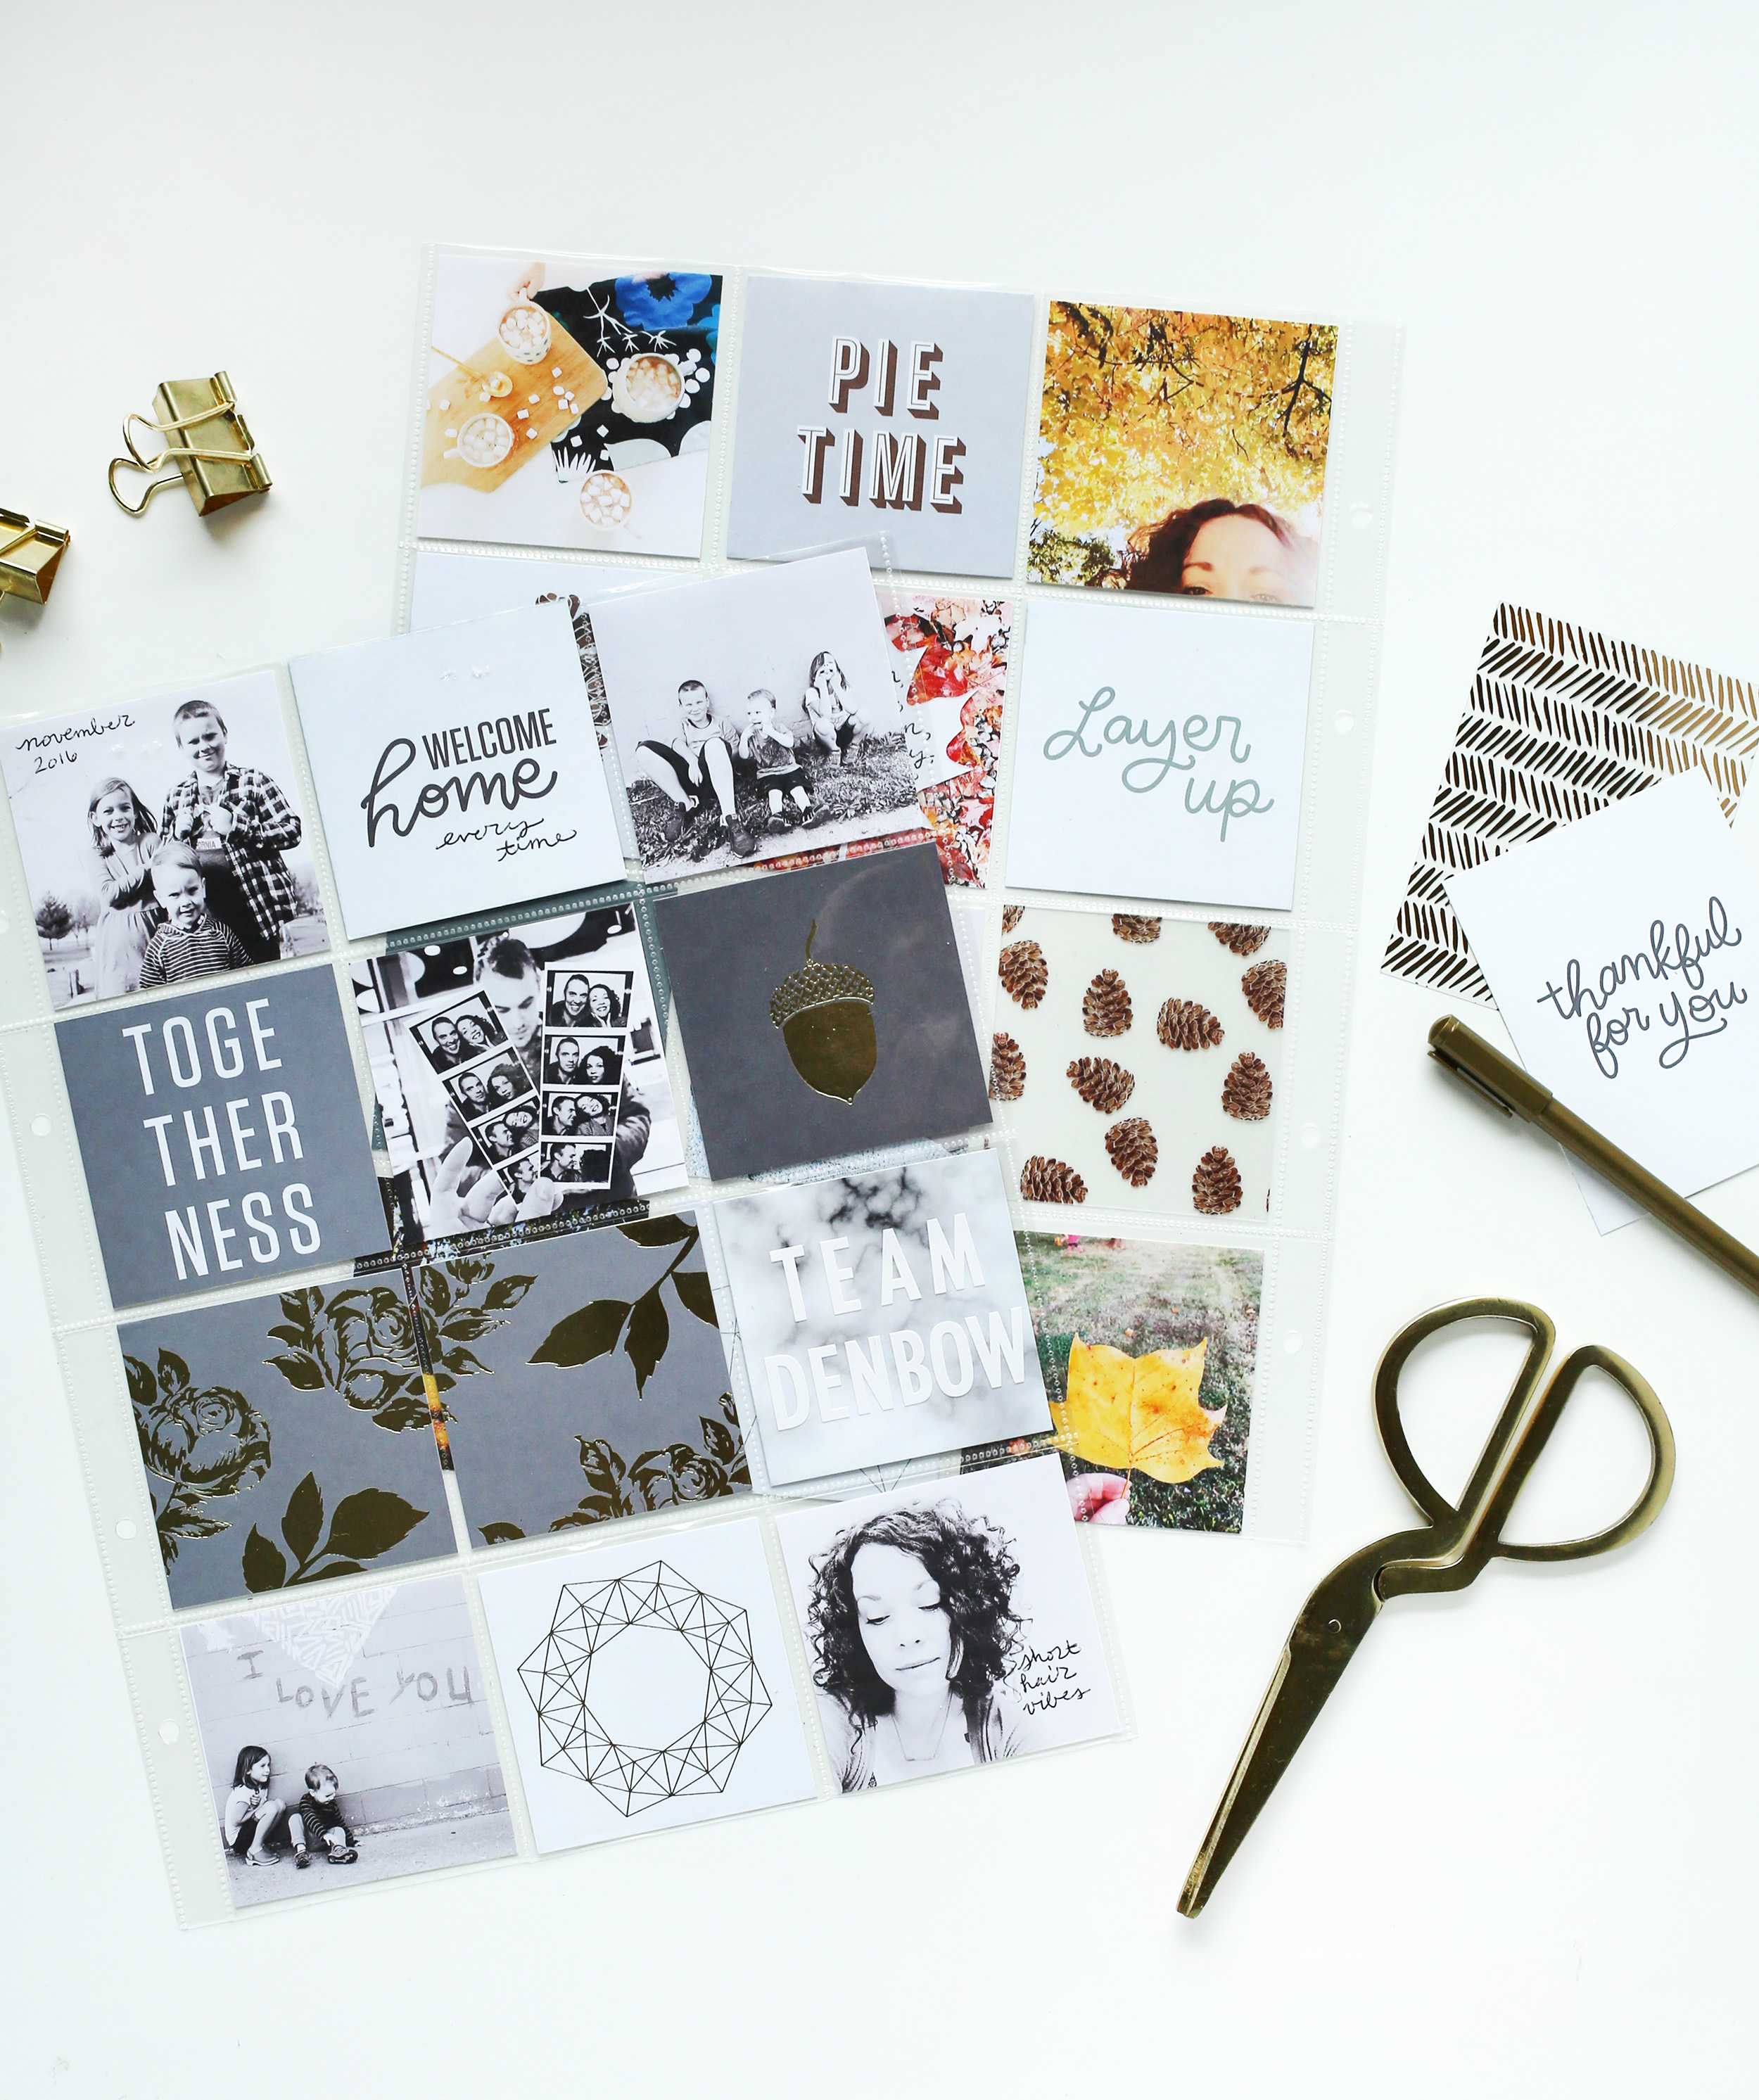 Scrapbook Sunday Messy Box from A Beautiful Mess. Full of great neutral and metallic cards for documenting the holidays